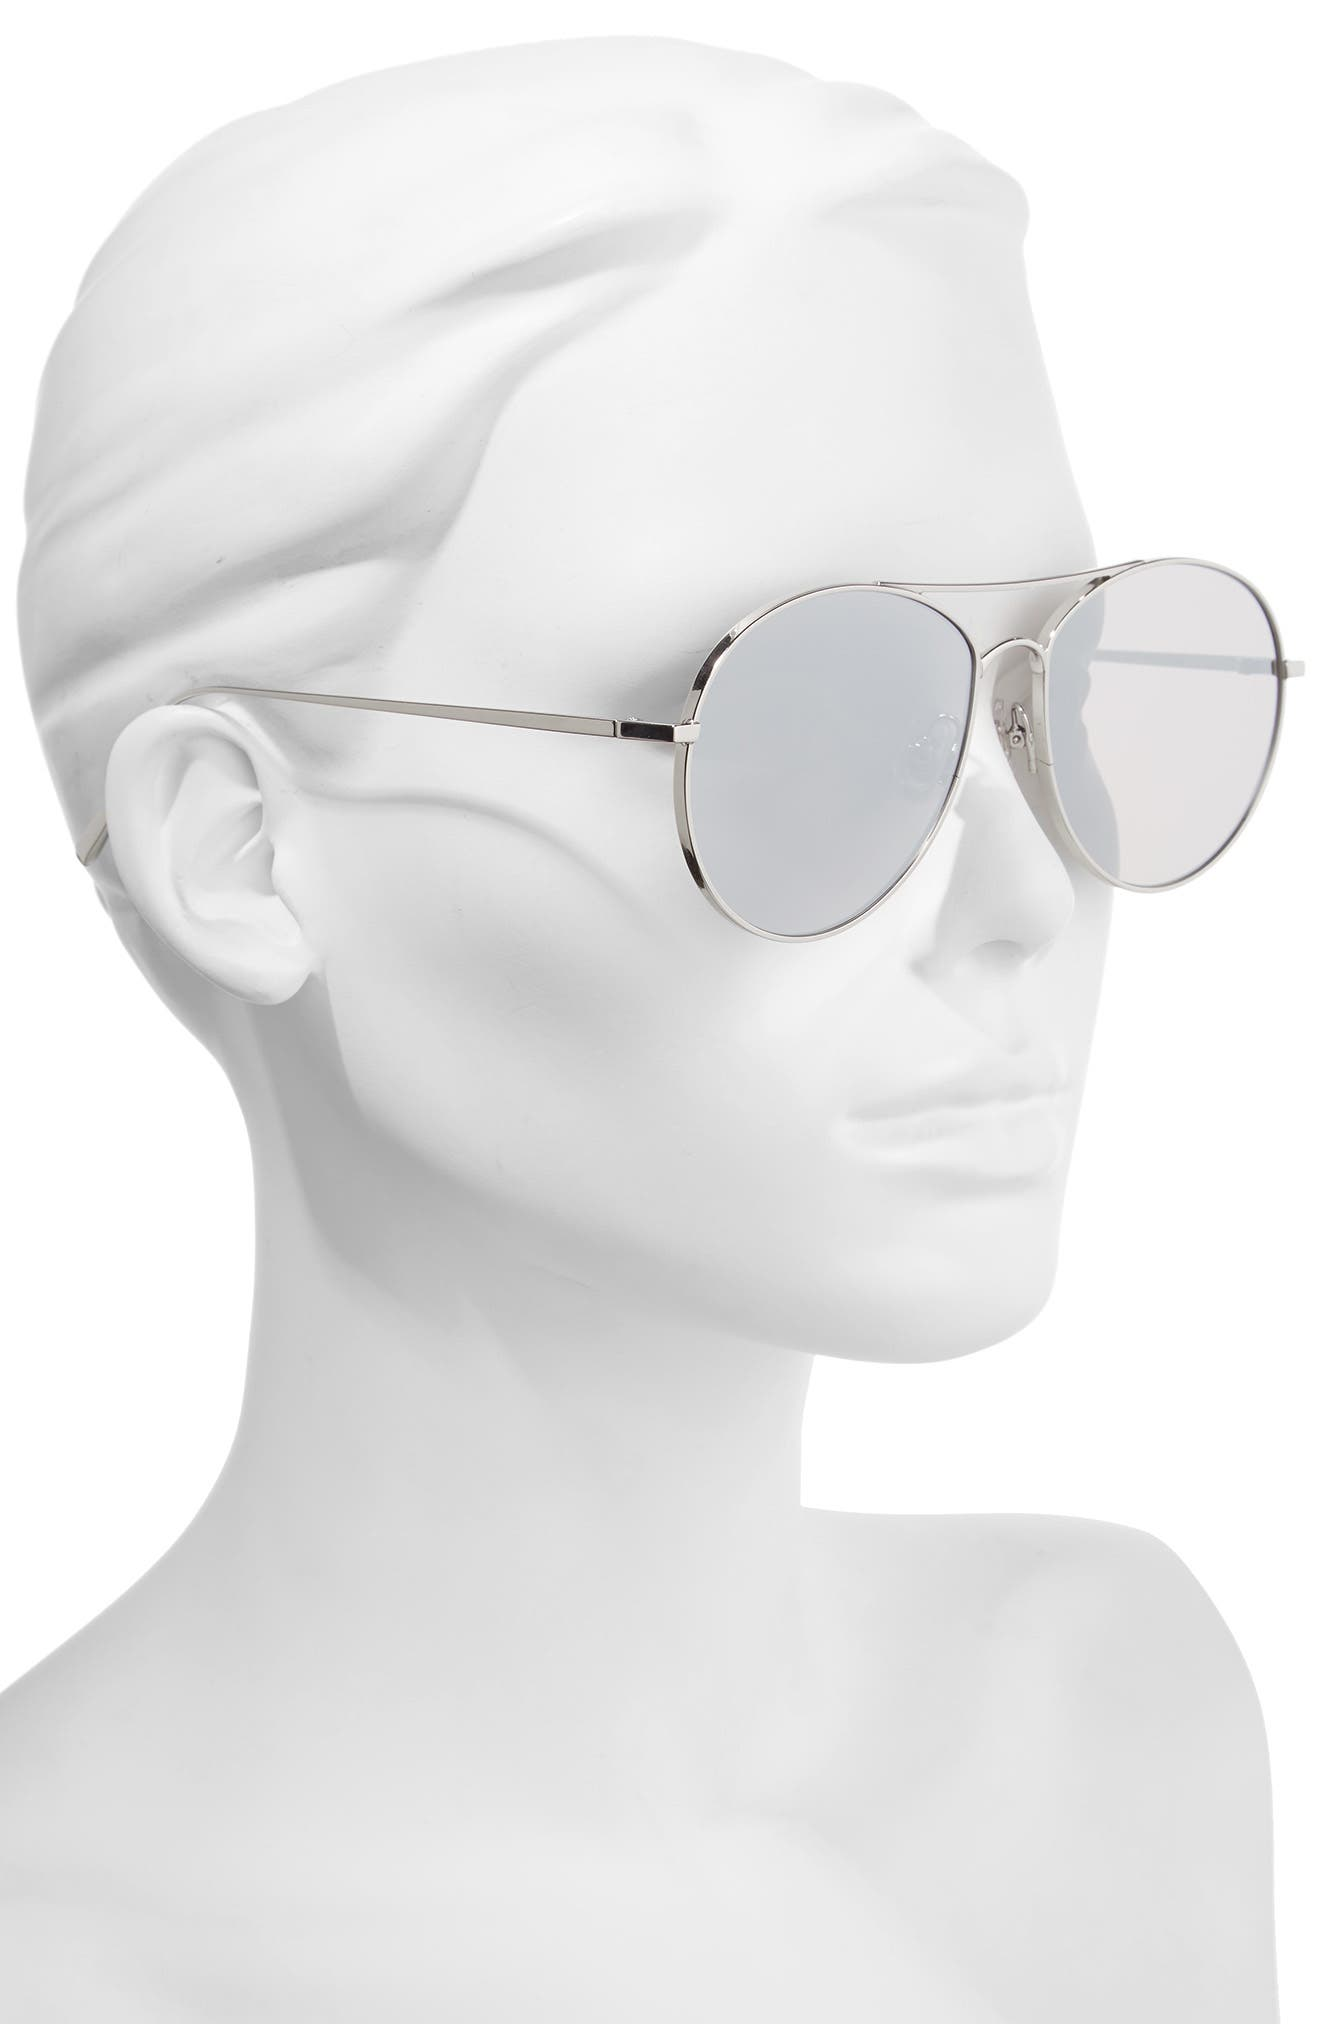 Ranny Ring 58mm Aviator Sunglasses,                             Alternate thumbnail 2, color,                             Silver Mirror